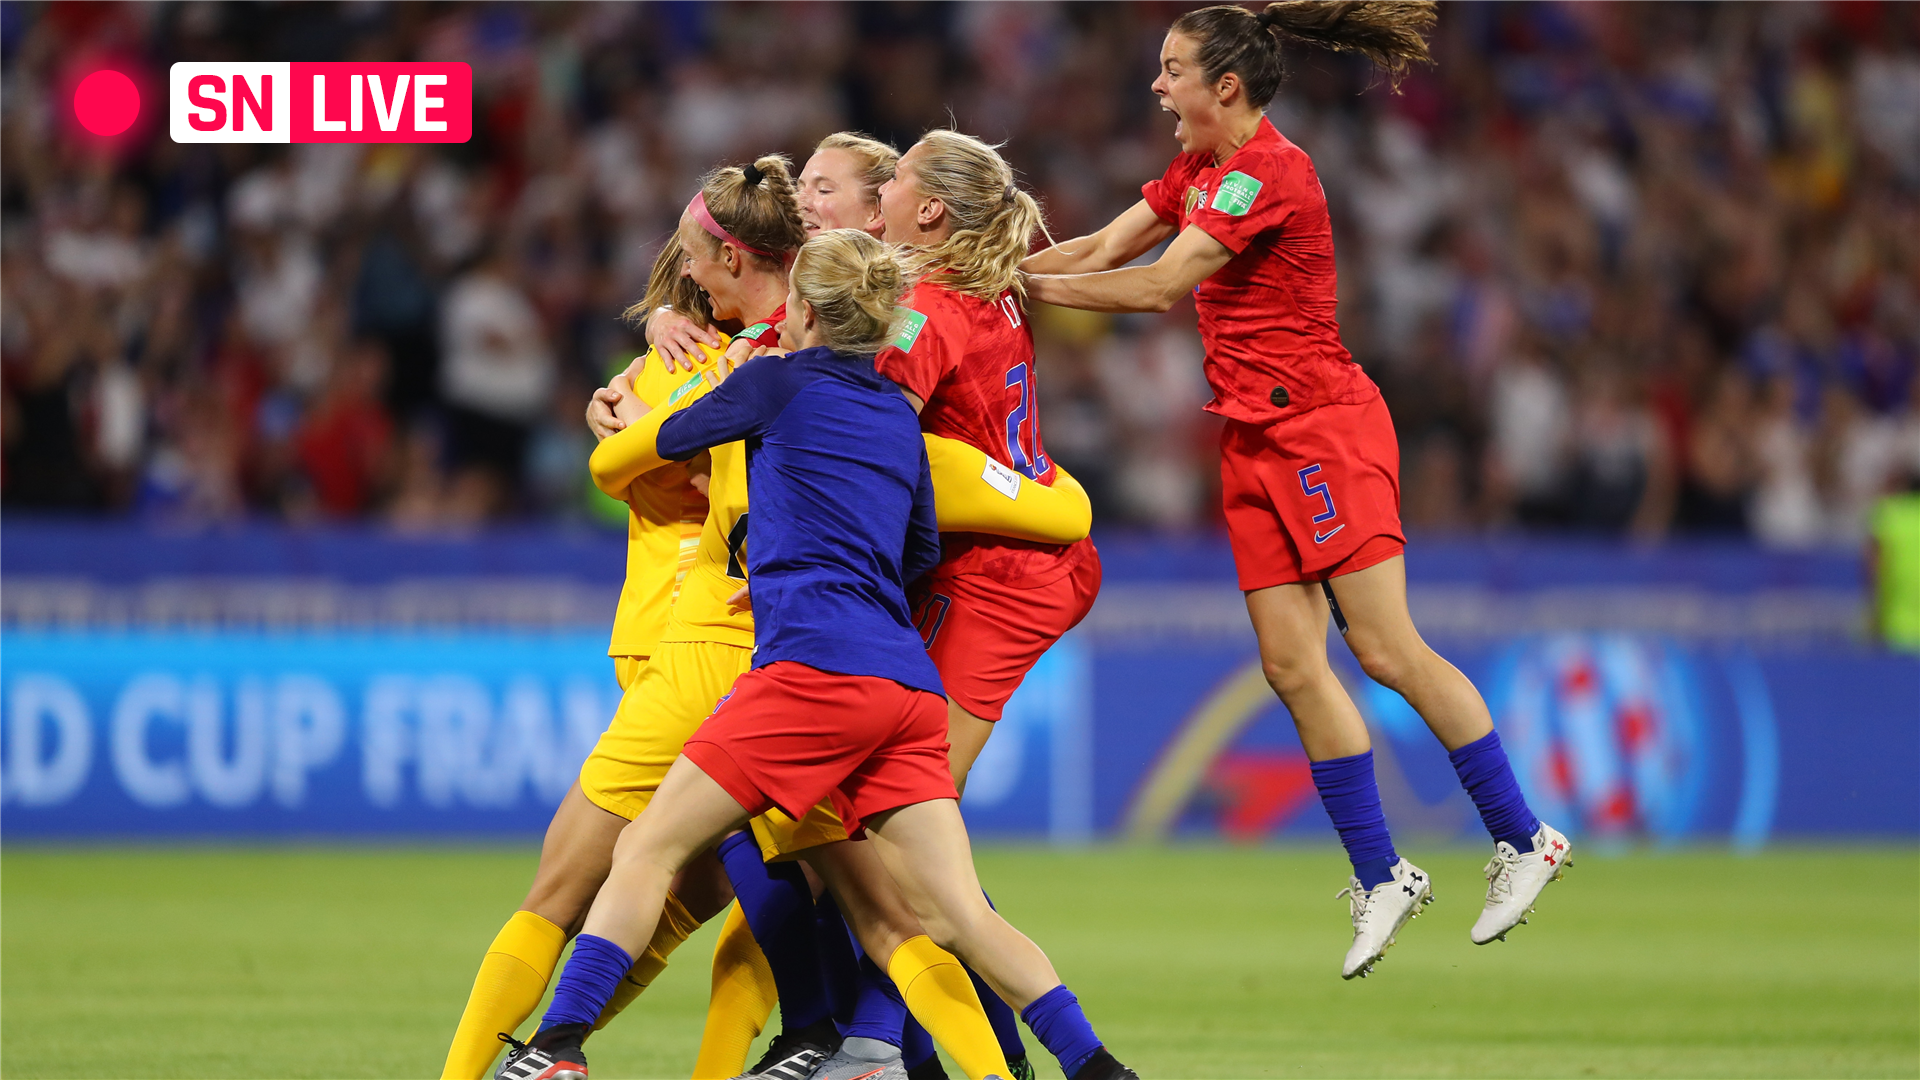 USWNT vs. Netherlands: Live scores, updates and highlights from USA's 2019 World Cup final